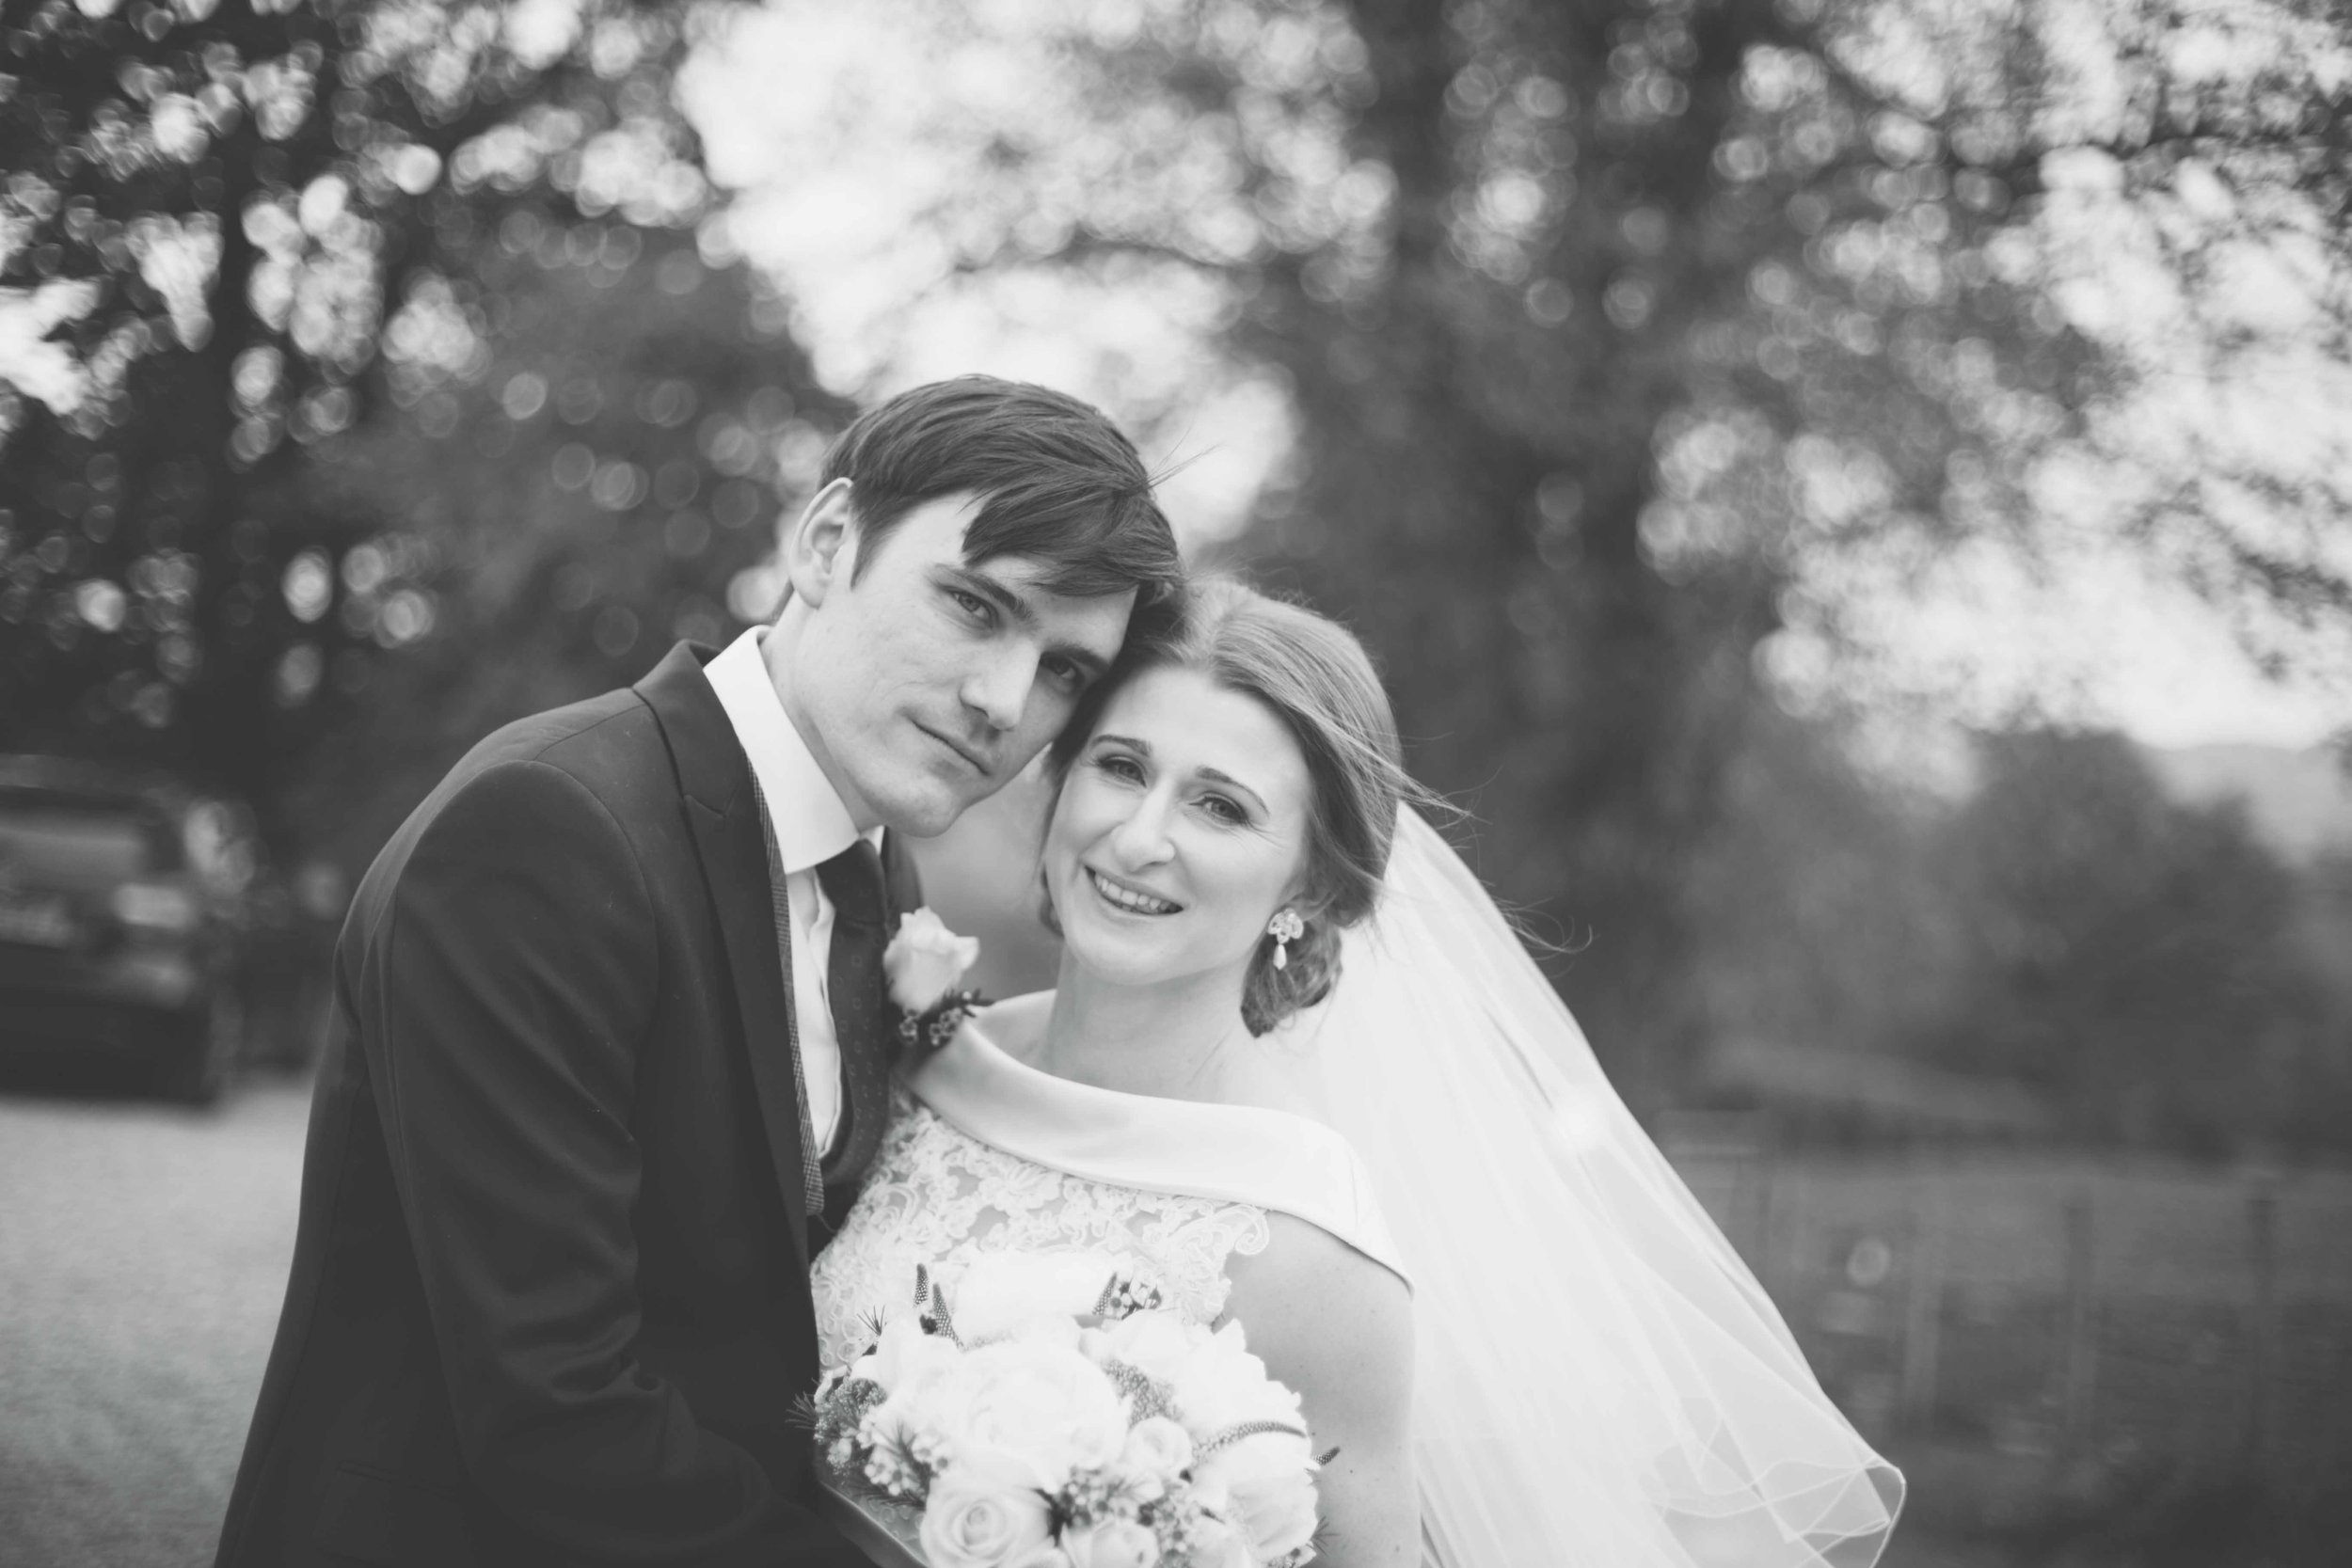 Wedding photographer in cheshire (1 of 1)-5.jpg